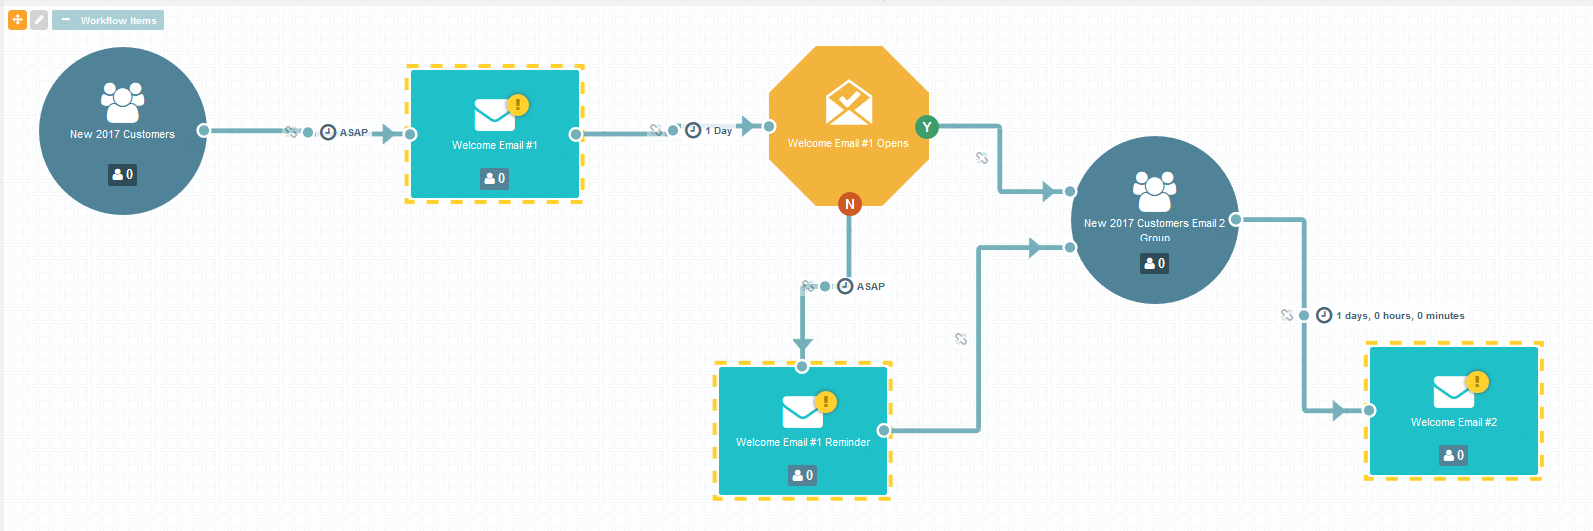 emfluence Marketing Platform Demo - Email Automation Workflow Canvas